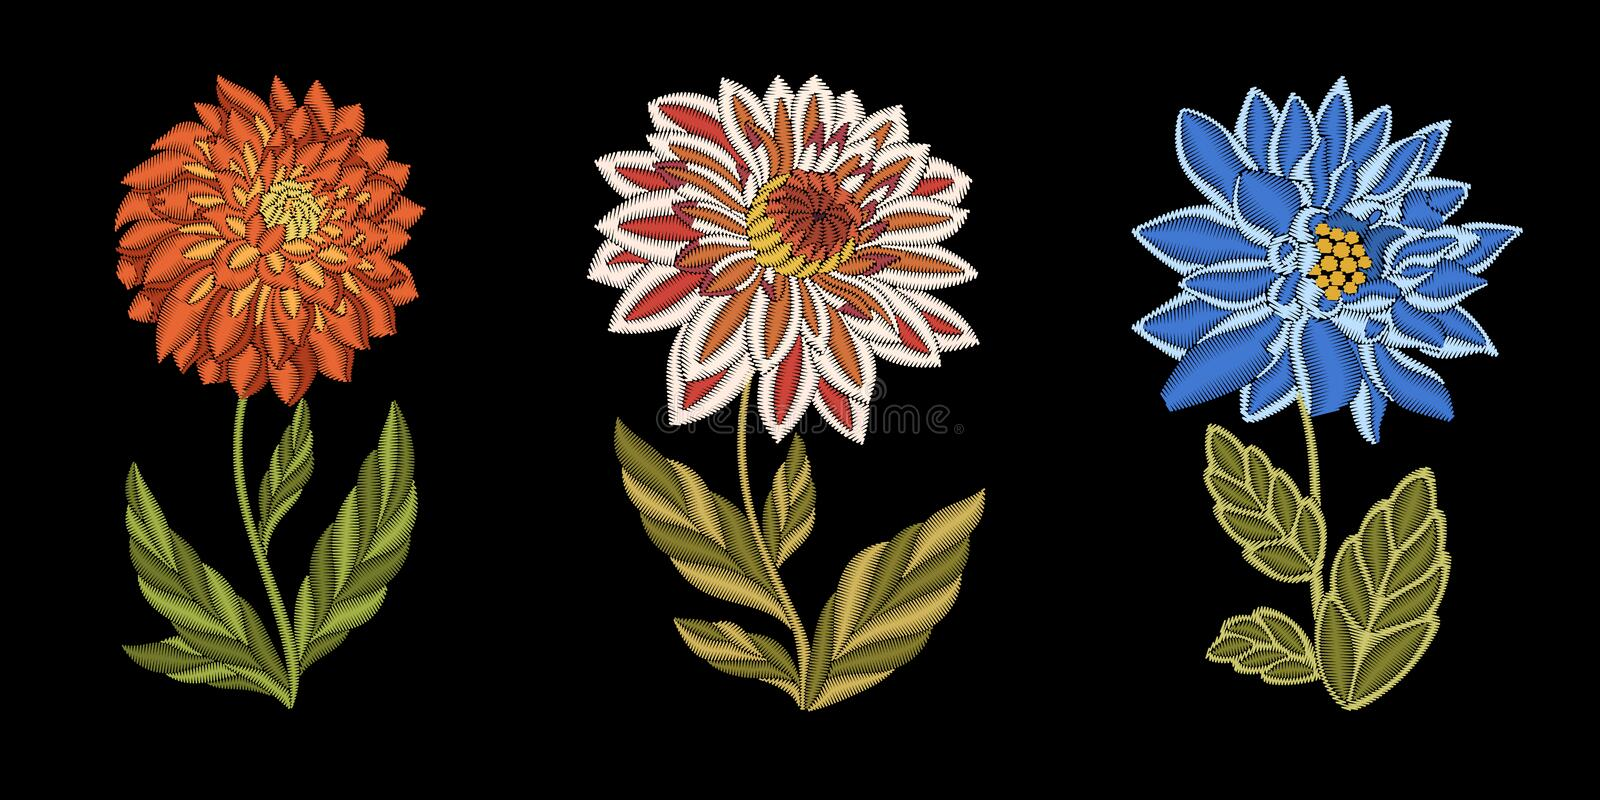 Embroidery floral fashion design stock images